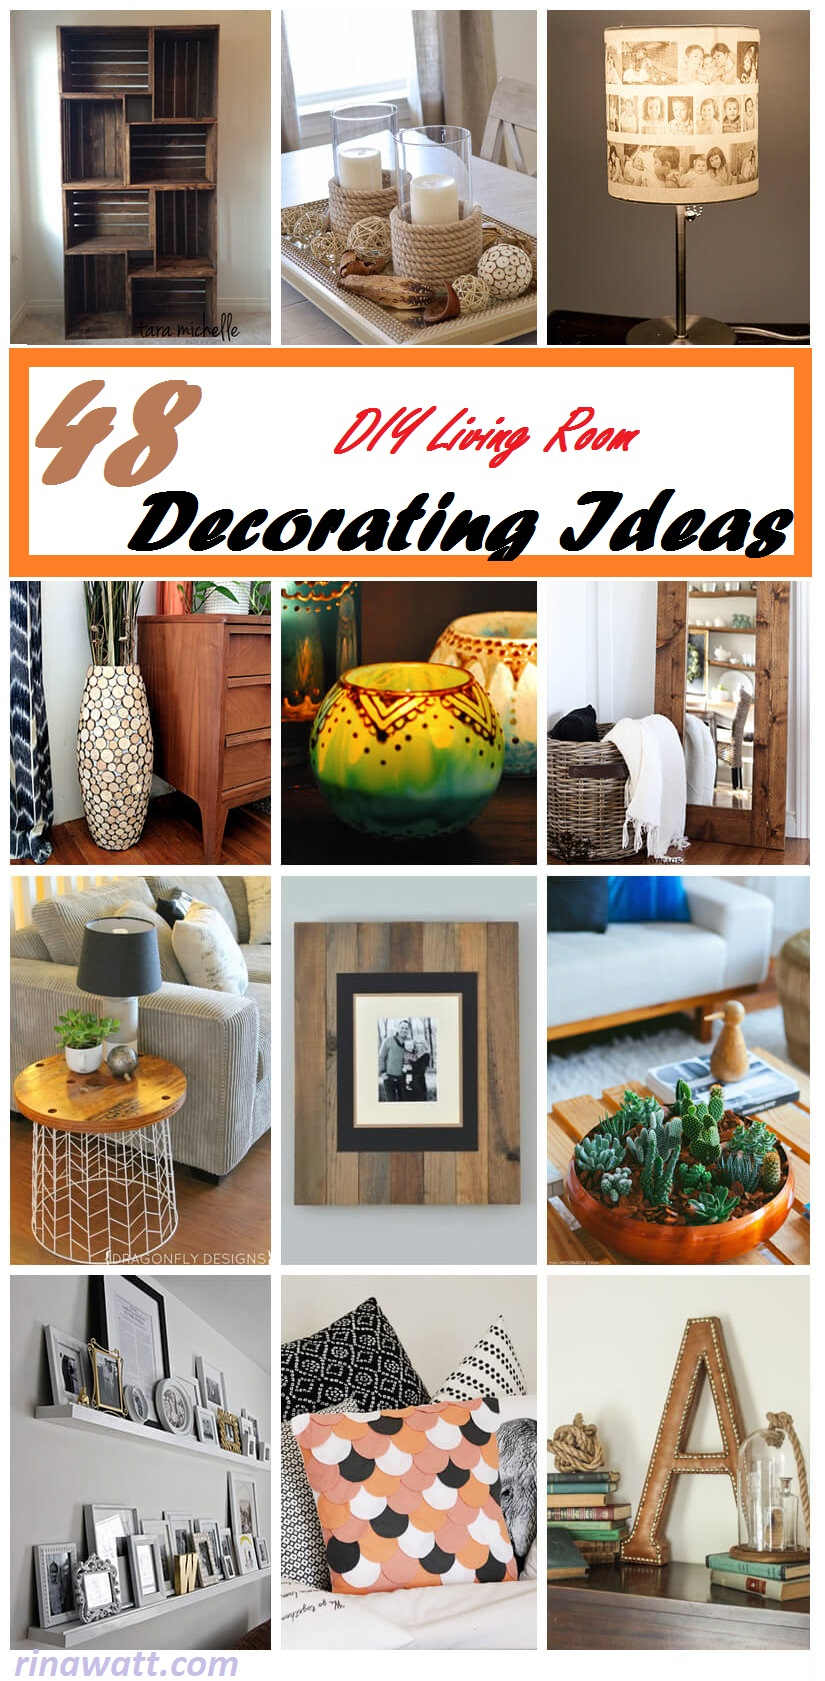 45+ Inspiring DIY Living Room Decorating Ideas for Designers ...